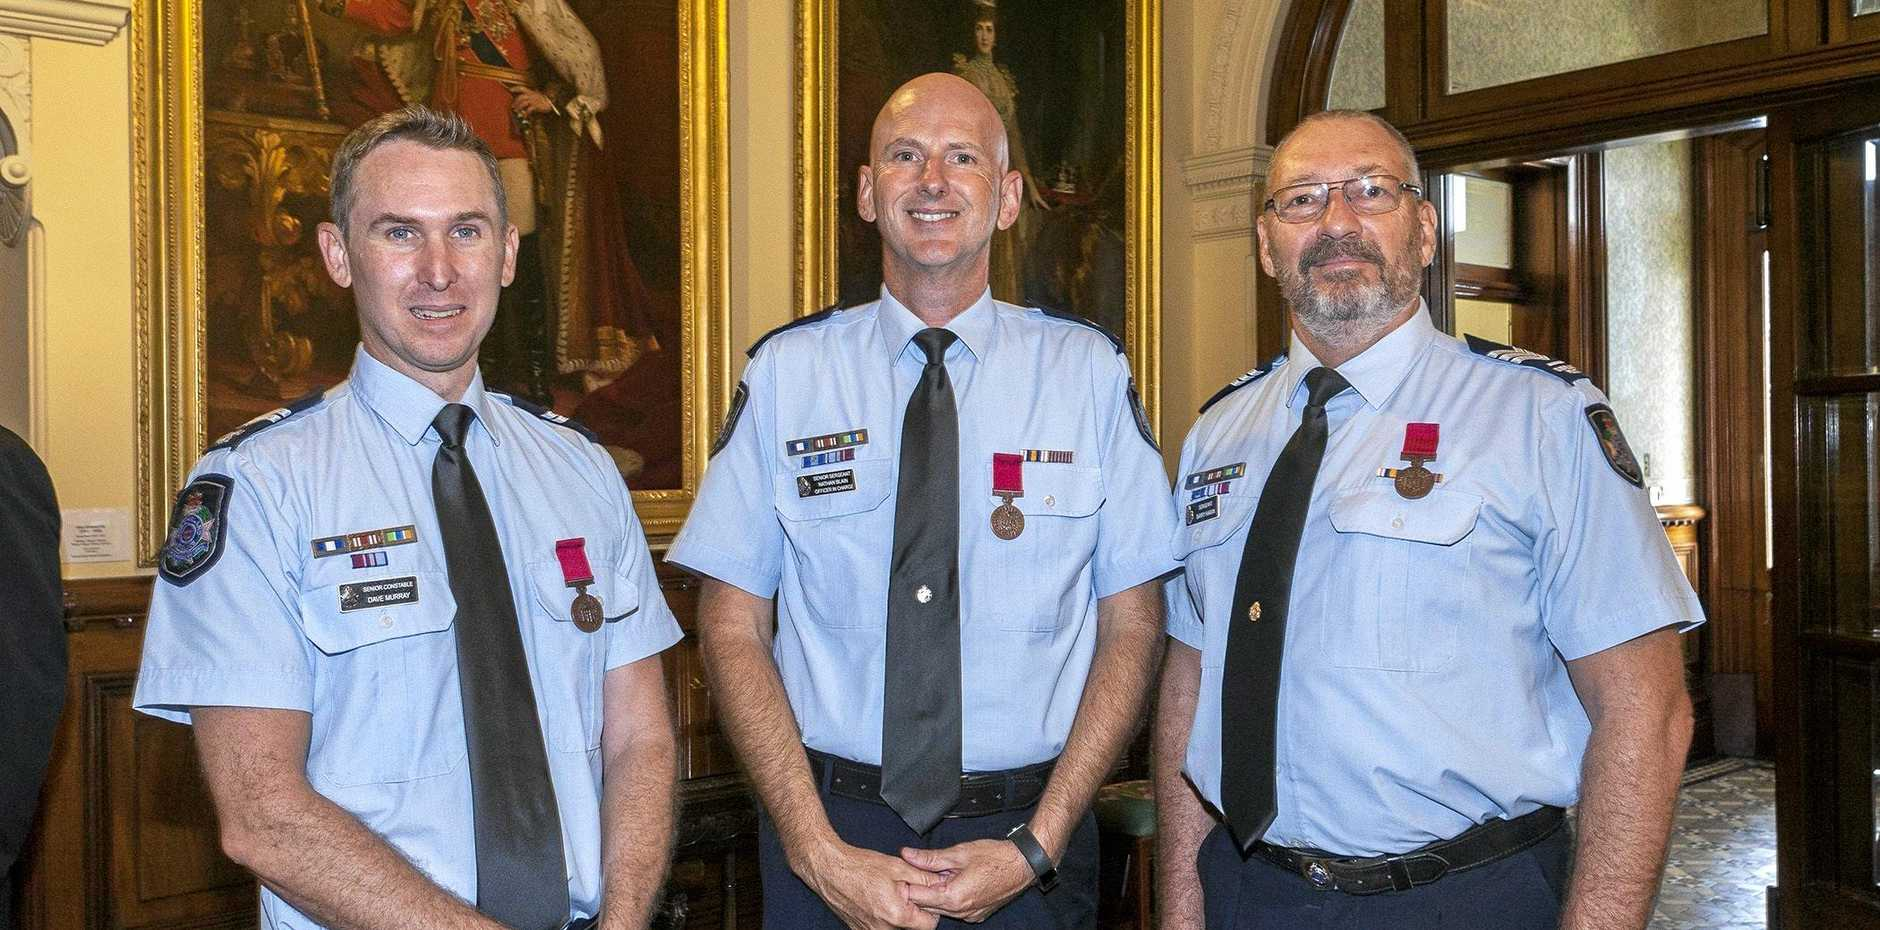 Dave Murray, Nathan Blain and Barry Haran have been honoured for their courage when a dangerous fire threatened the lives of several people.